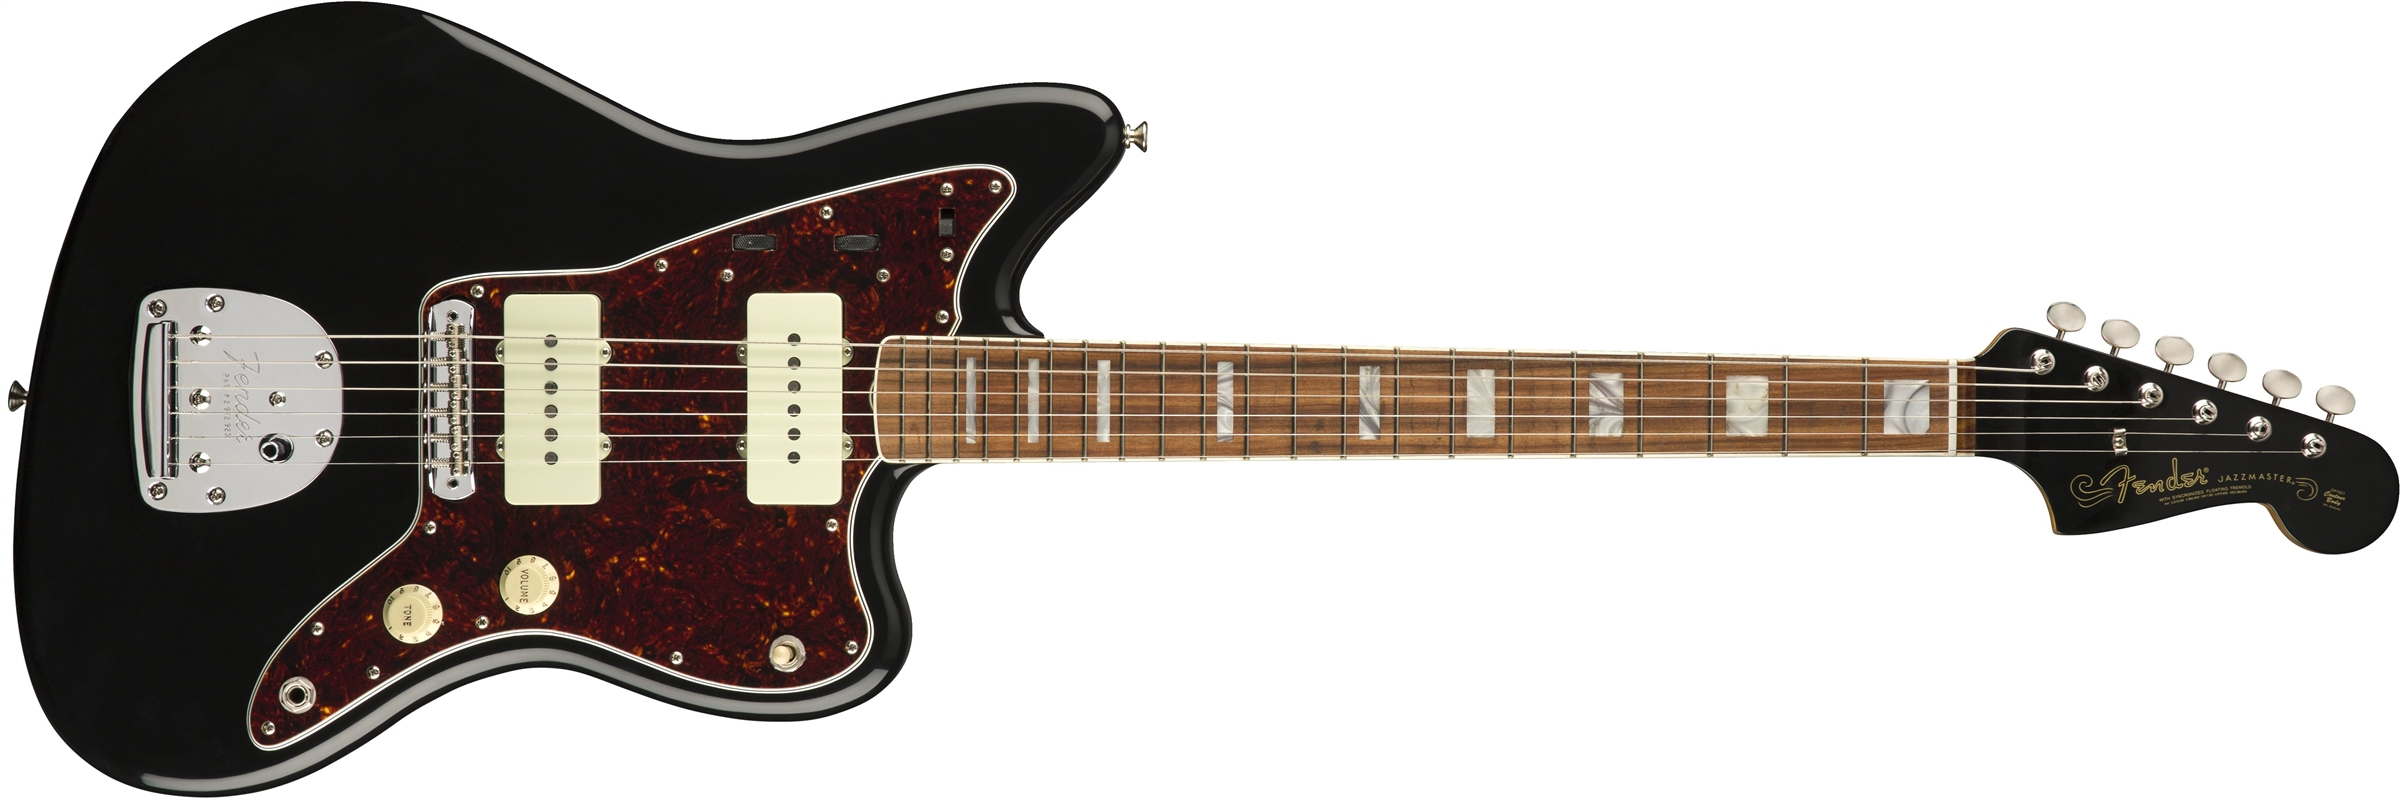 limited edition 60th anniversary classic jazzmaster electric guitars. Black Bedroom Furniture Sets. Home Design Ideas